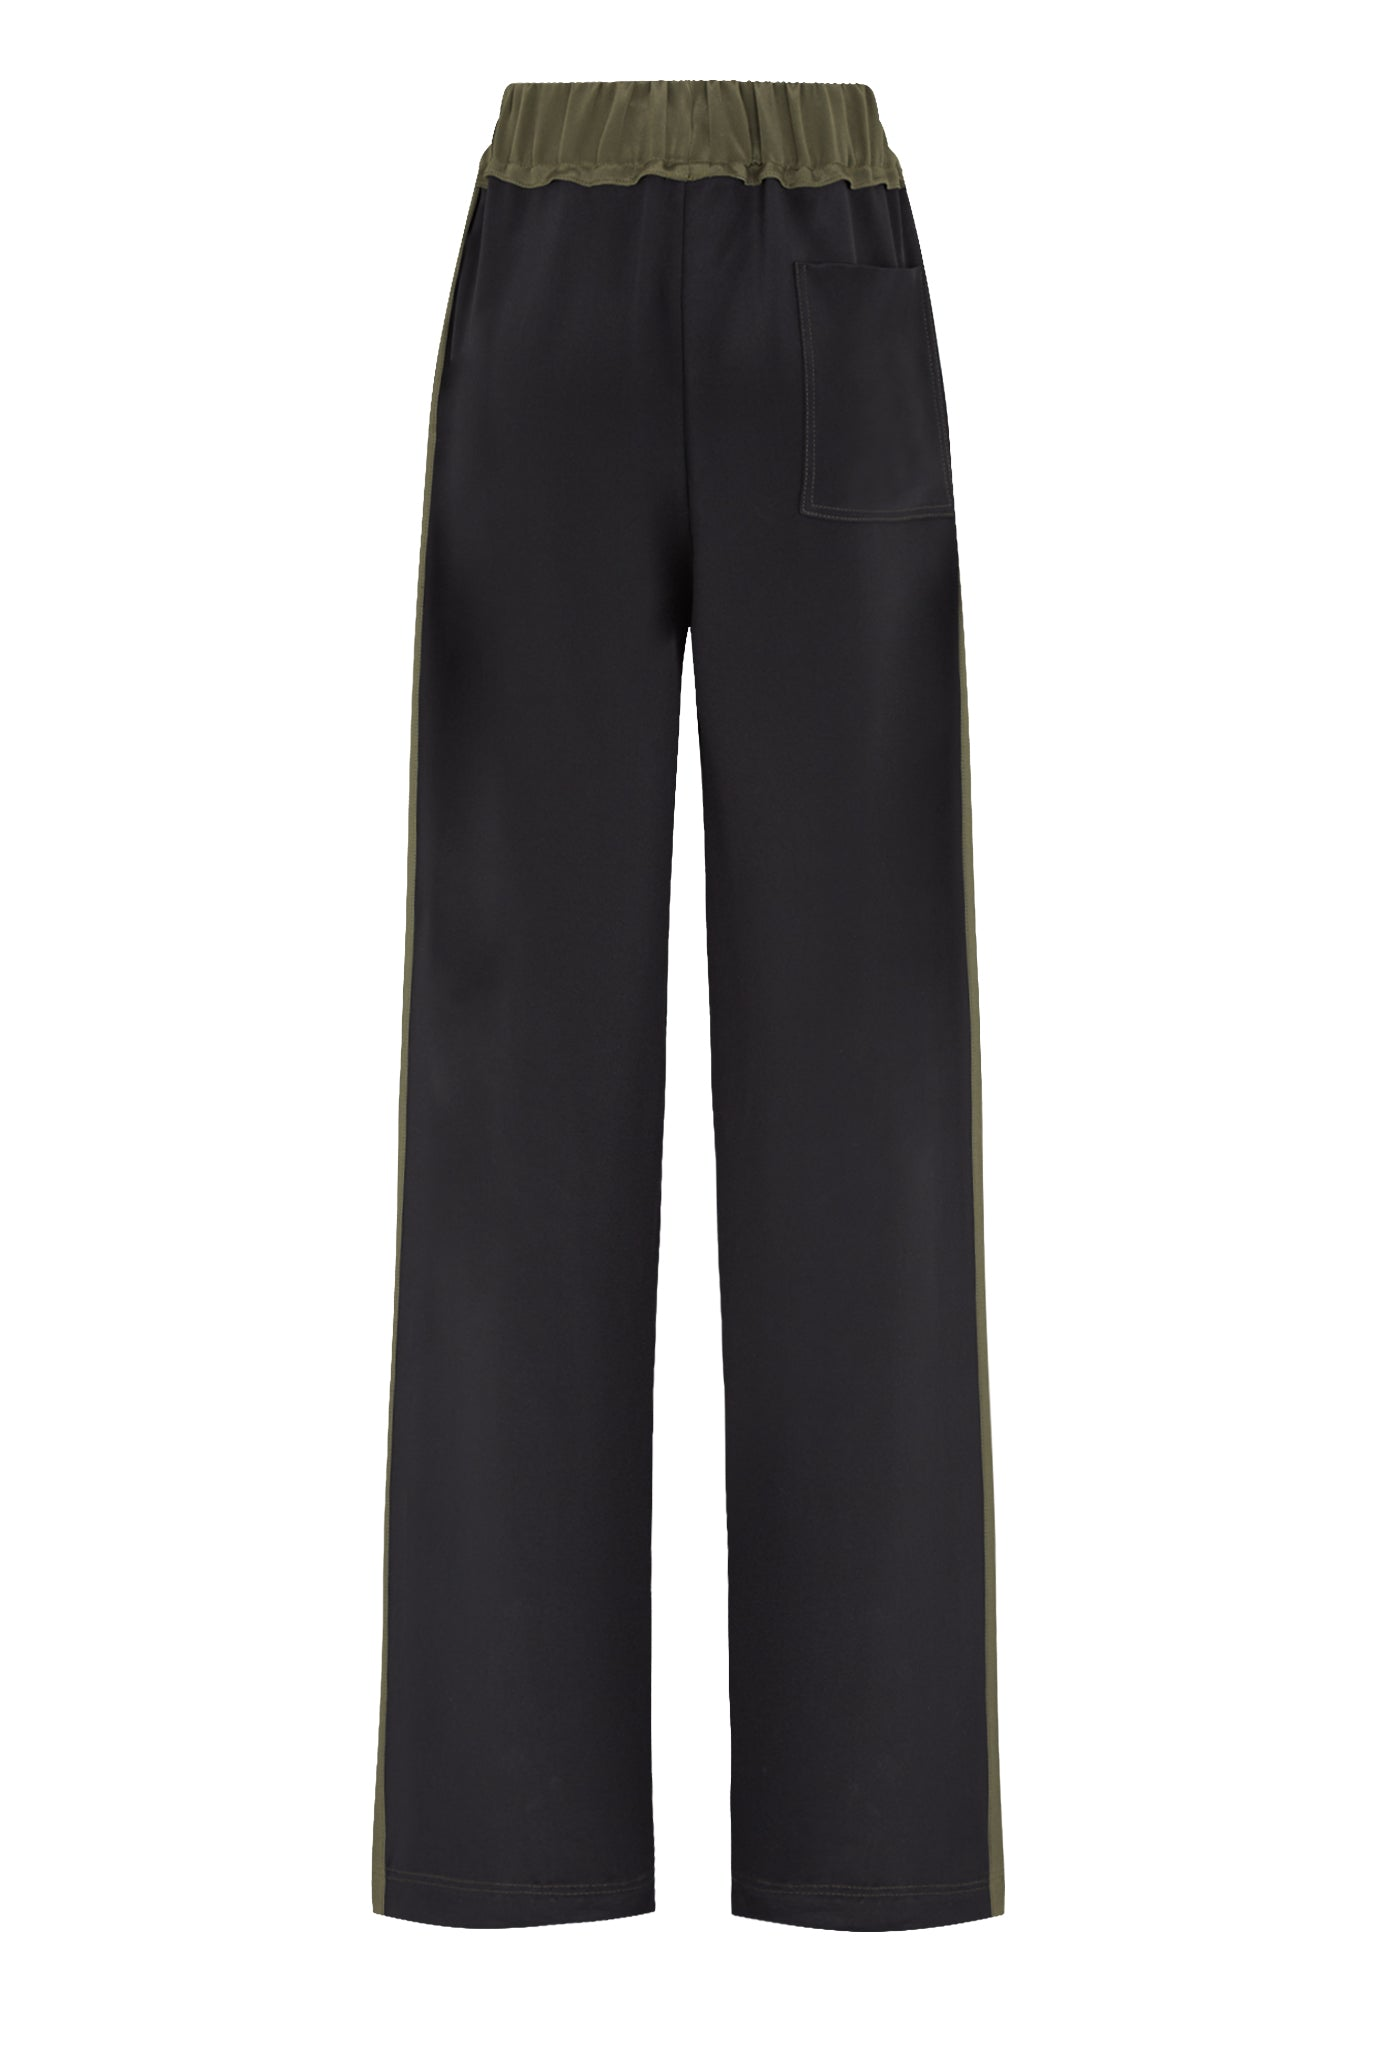 The Classic Wide Leg Jogger - Dark Navy & Khaki Silk